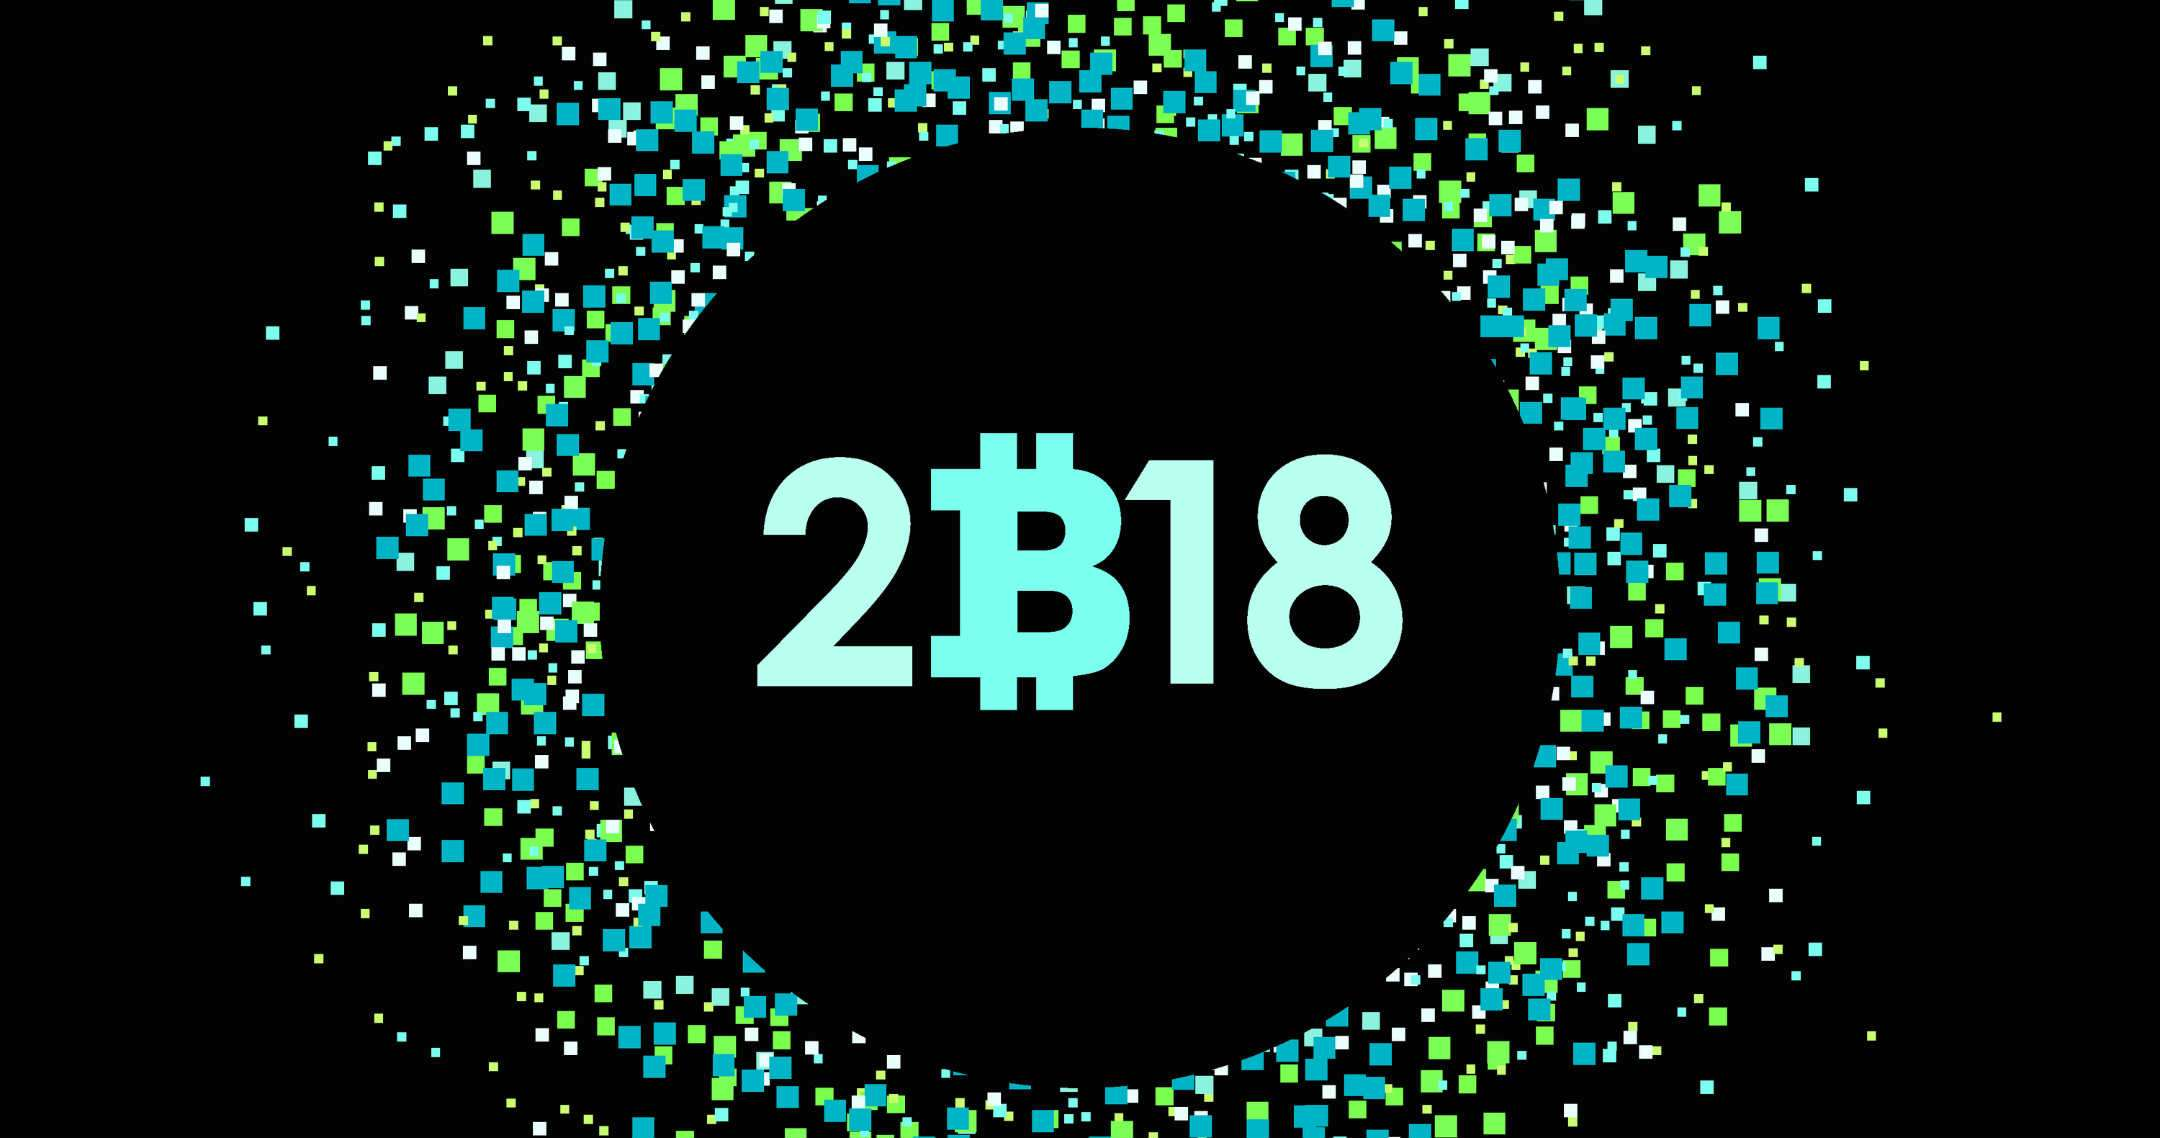 Bitcoin price prediction for 2018 and if you should invest